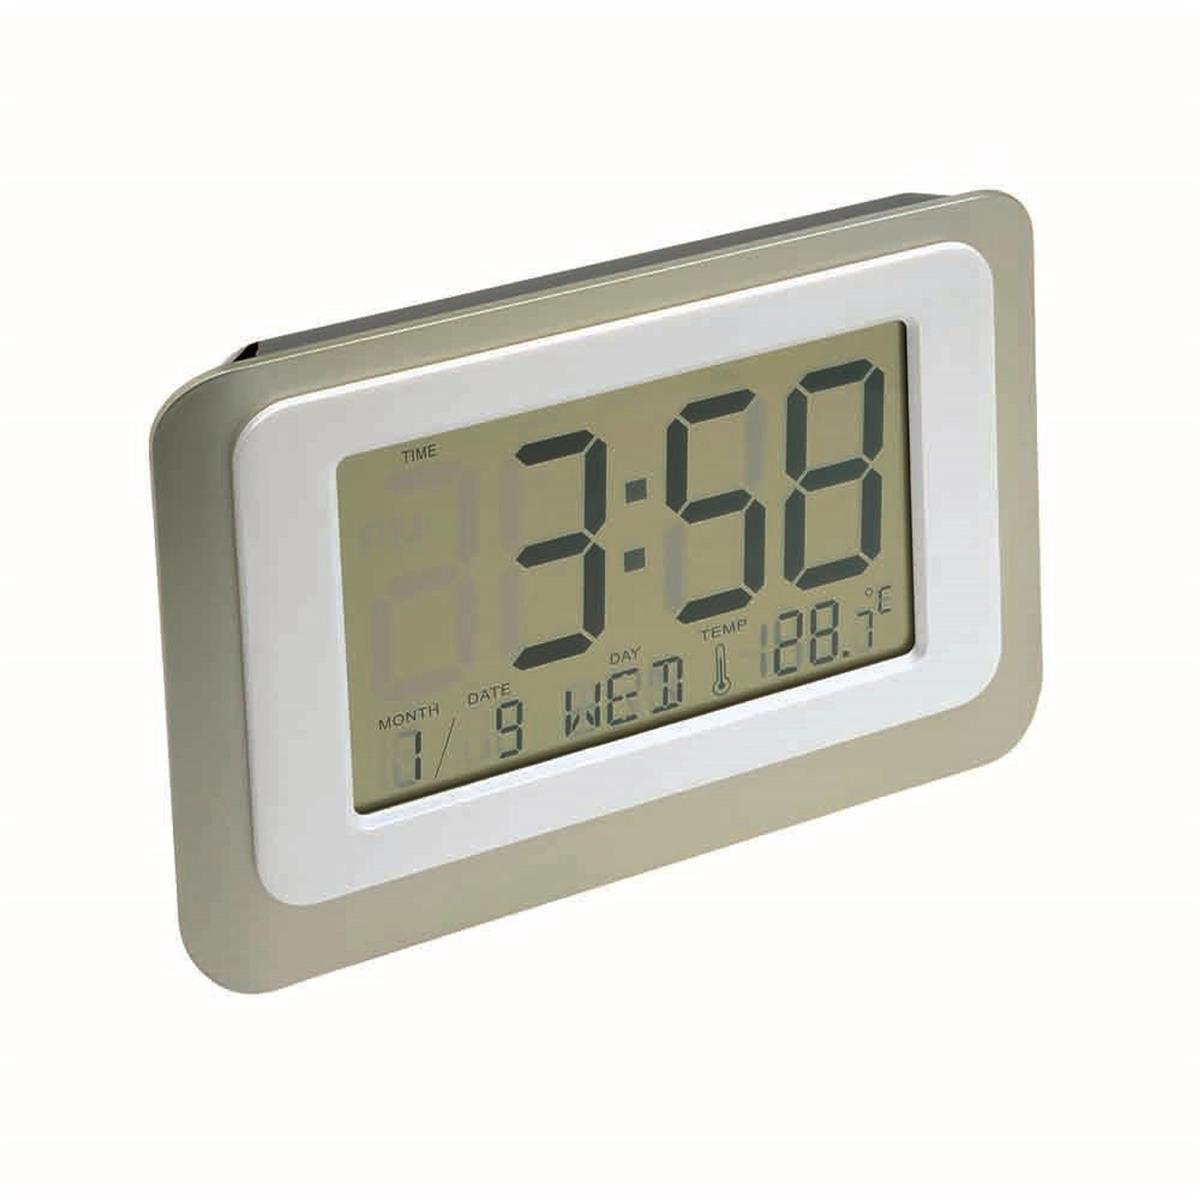 Free standing clocks Digital LCD Clock 12/24 Hour switch with Thermometer and Count Down Timer